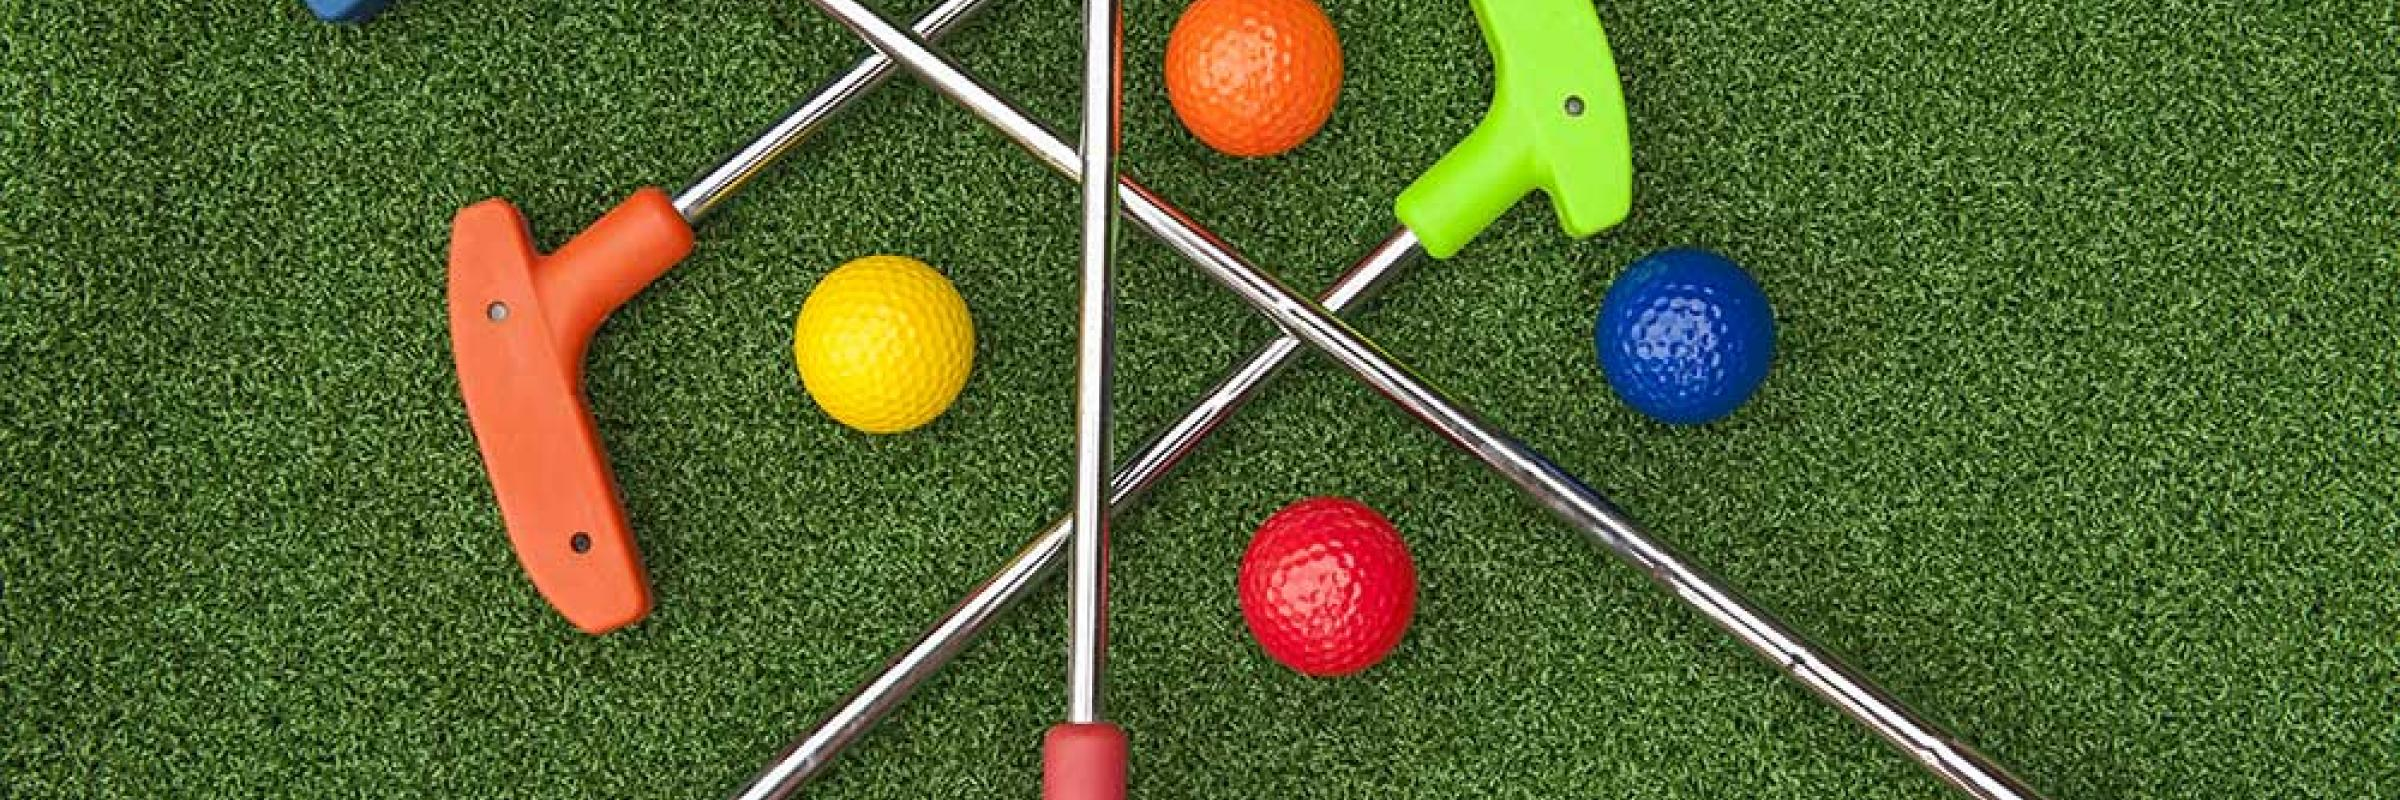 miniature golf u0026 games floridasmart